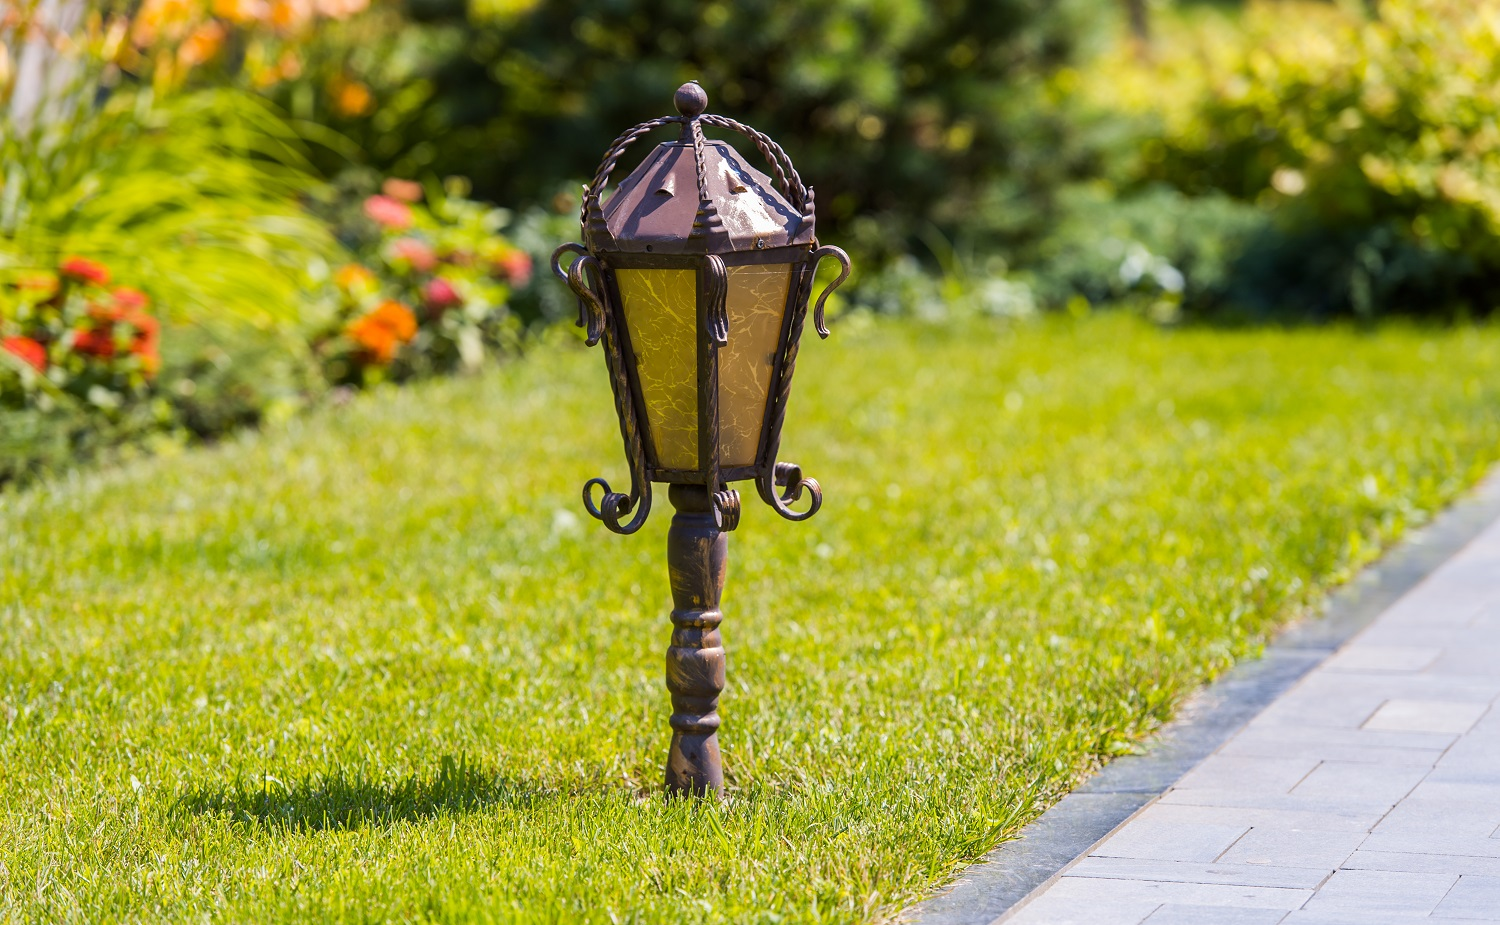 Street light in the garden